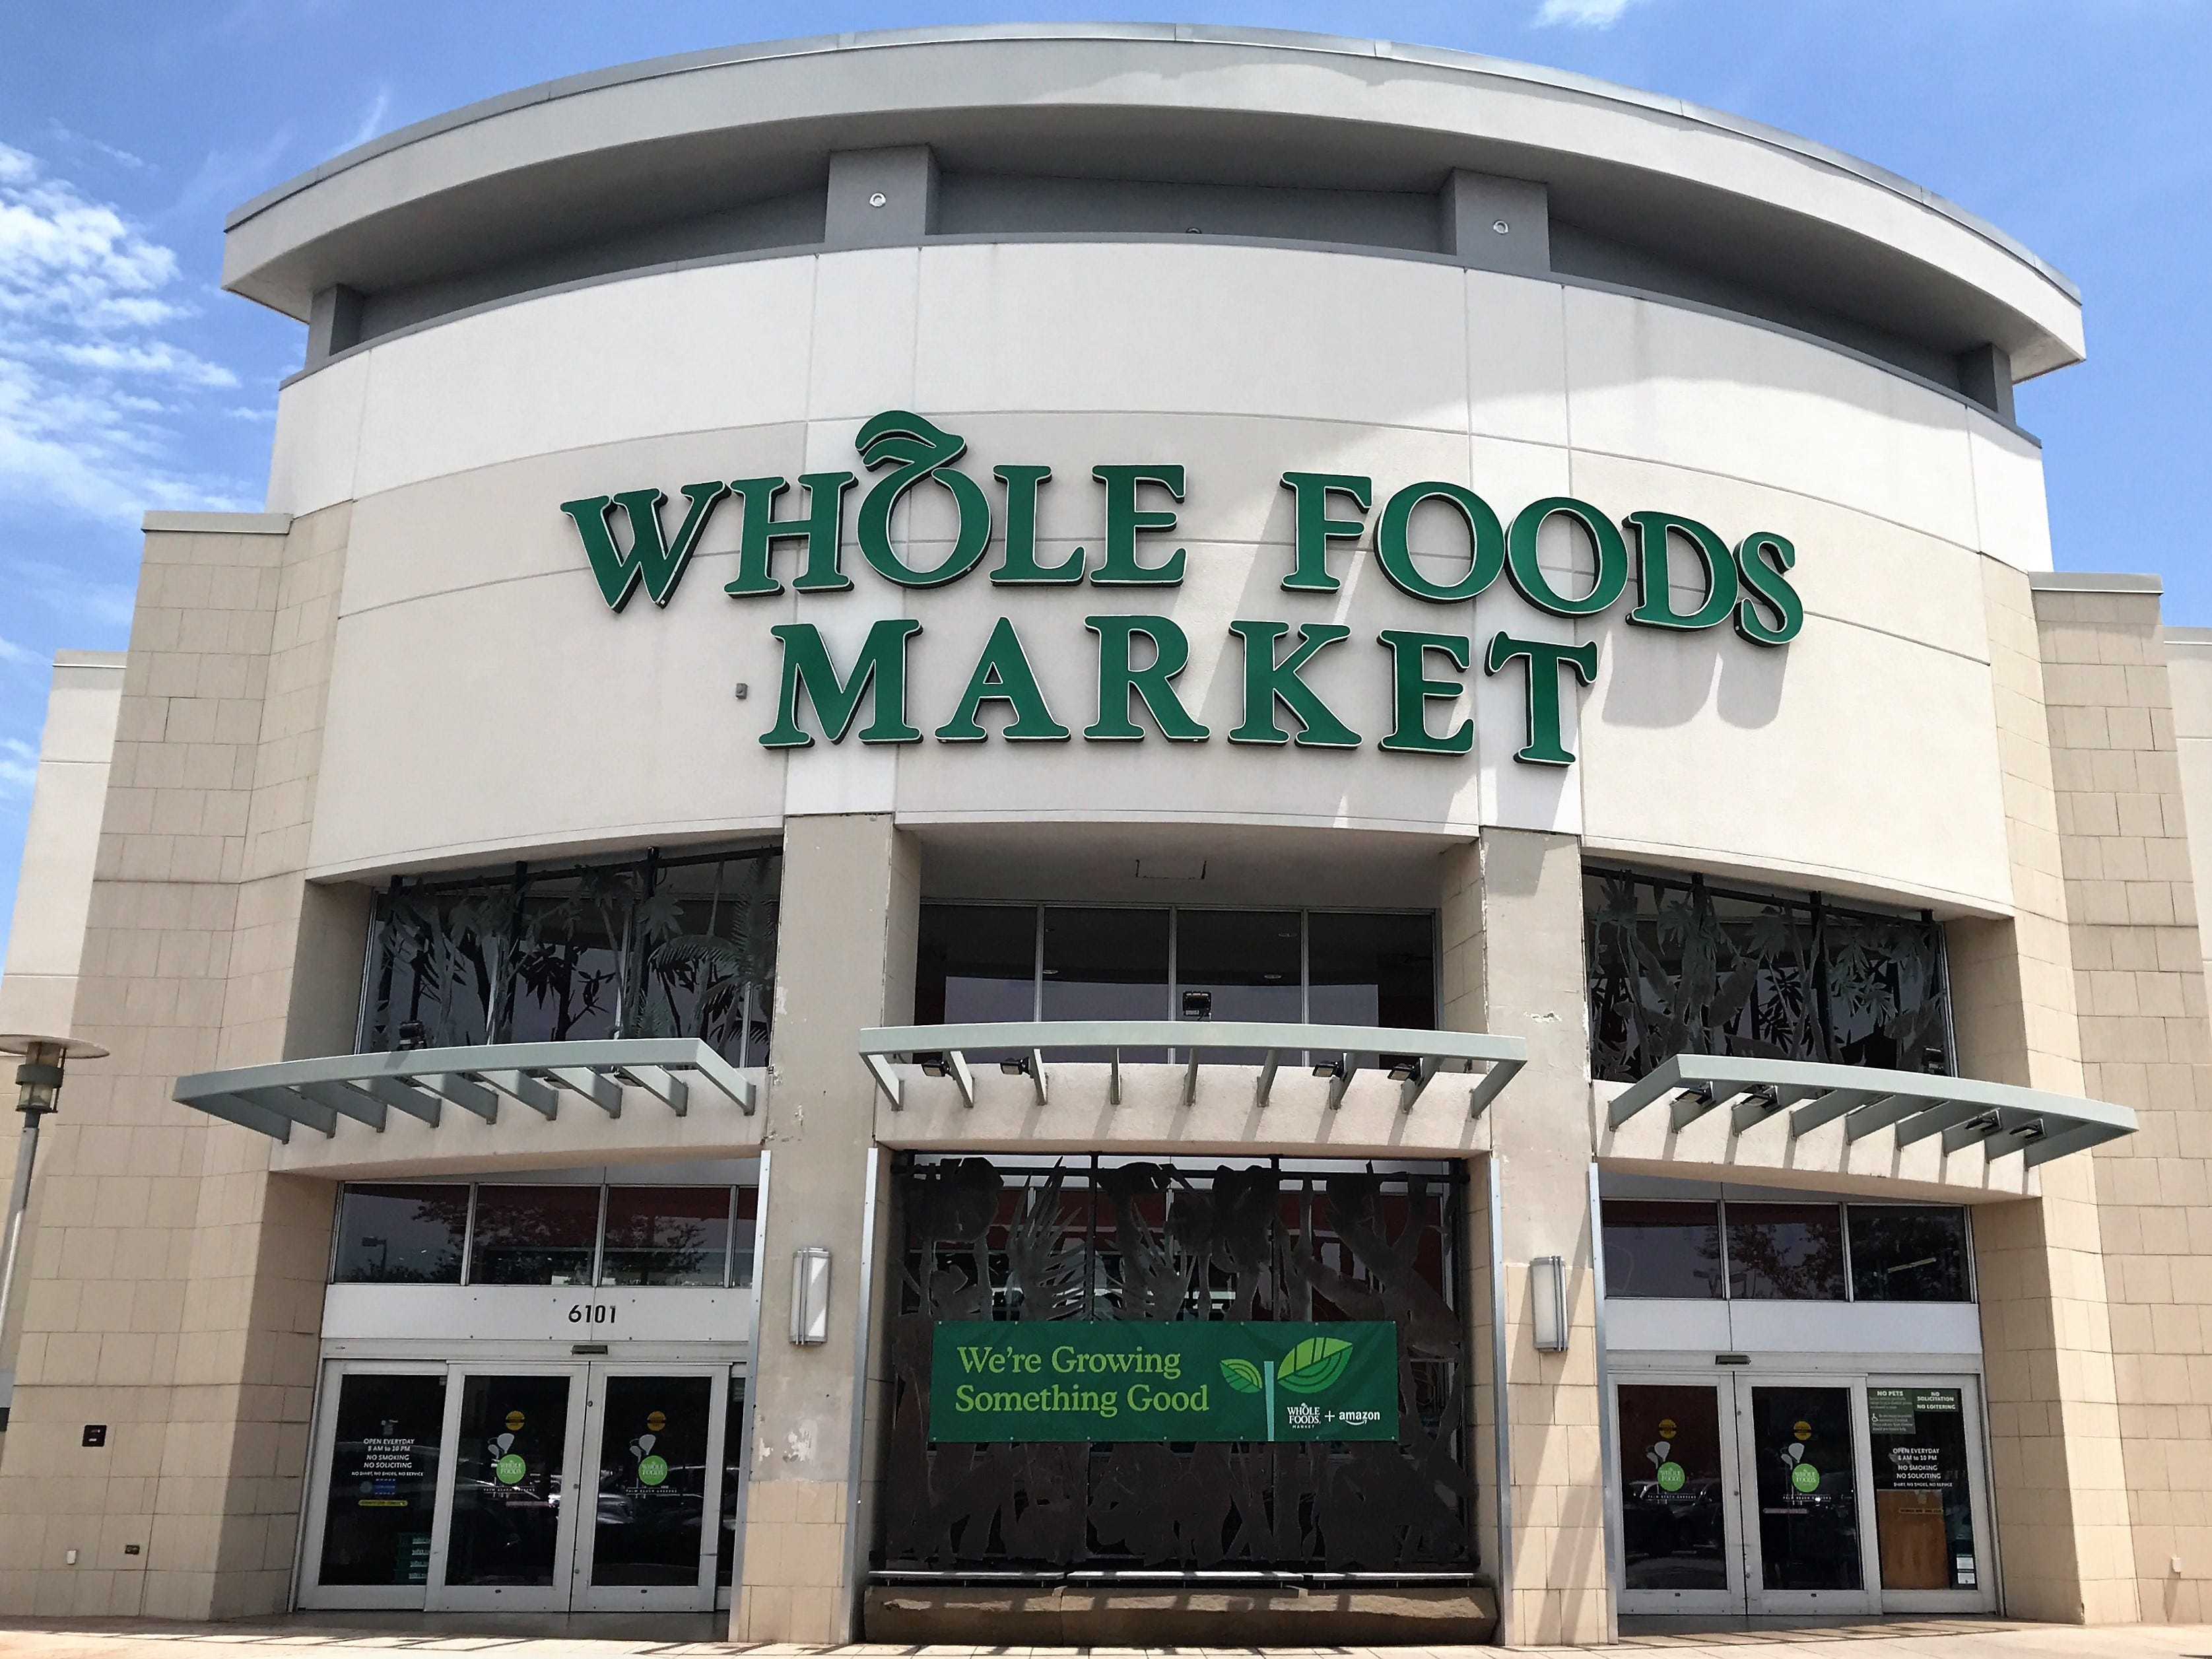 Whole Foods Market was acquired by Amazon in 2017.